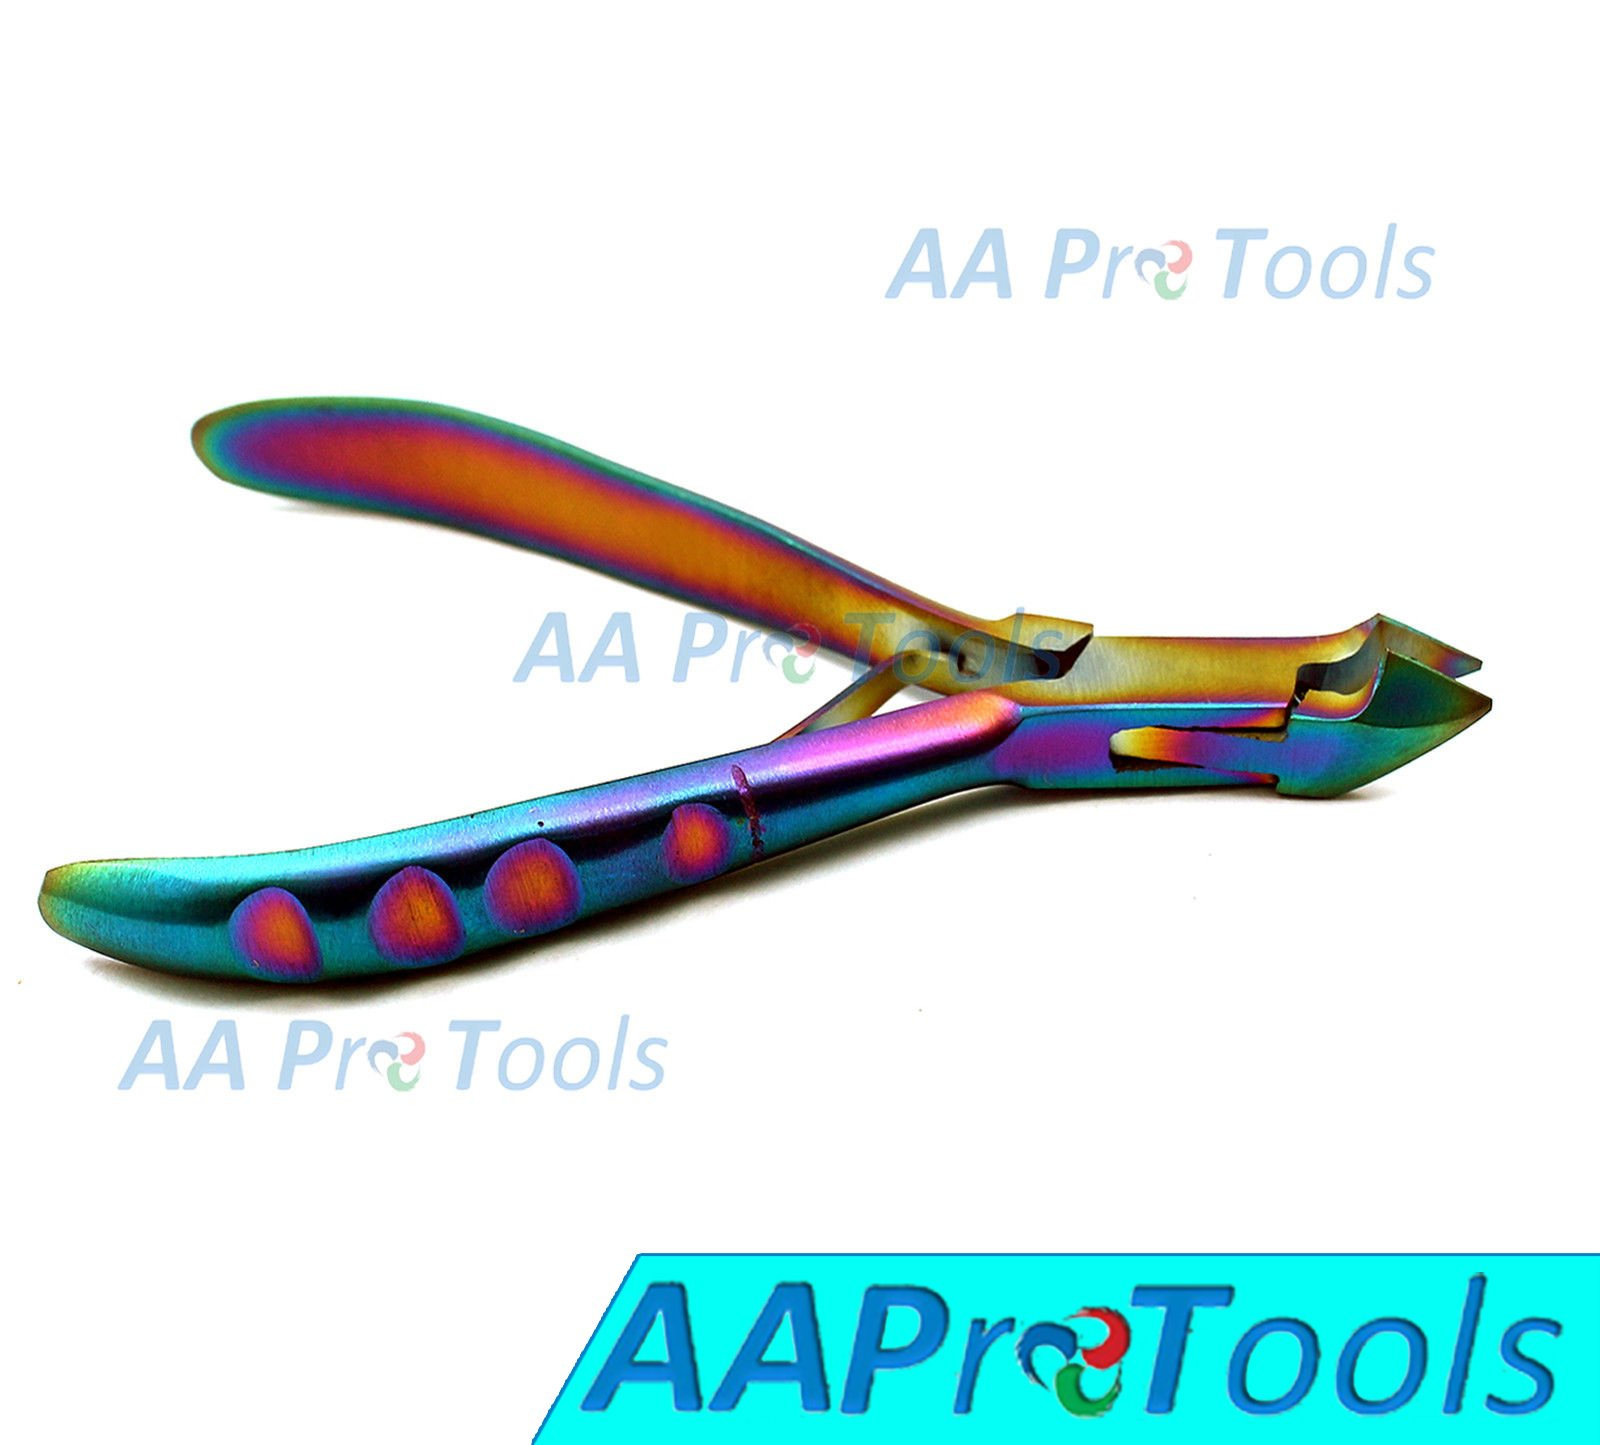 AAPROTOOLS TITANIUM COADED CUTICLE NIPPERS RAINBOW COLOR A+ QUALITY